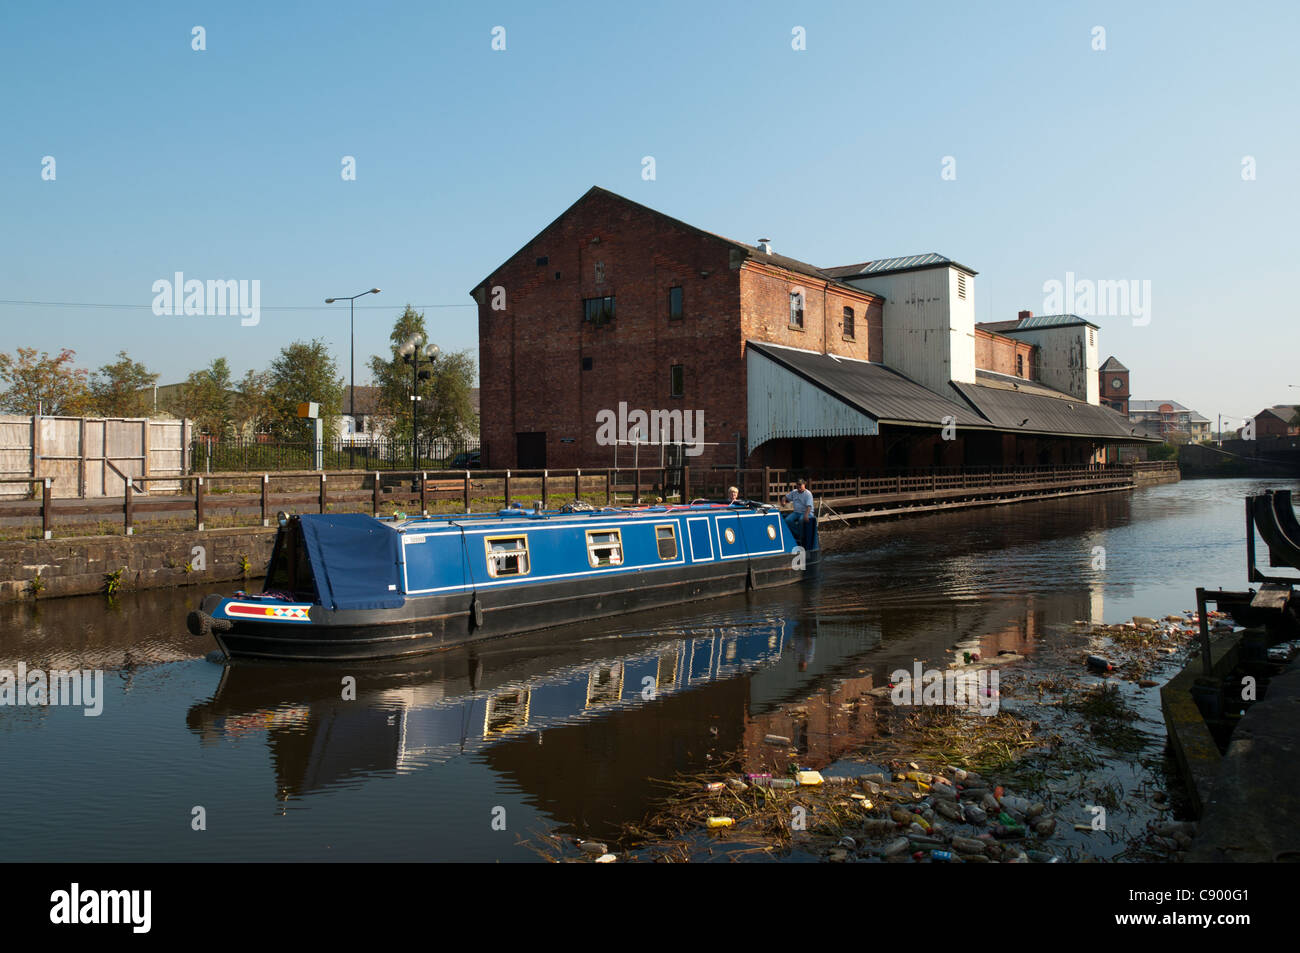 A narrowboat on the Leeds and Liverpool Canal at Wigan Pier, Wigan, Greater Manchester, England, UK - Stock Image